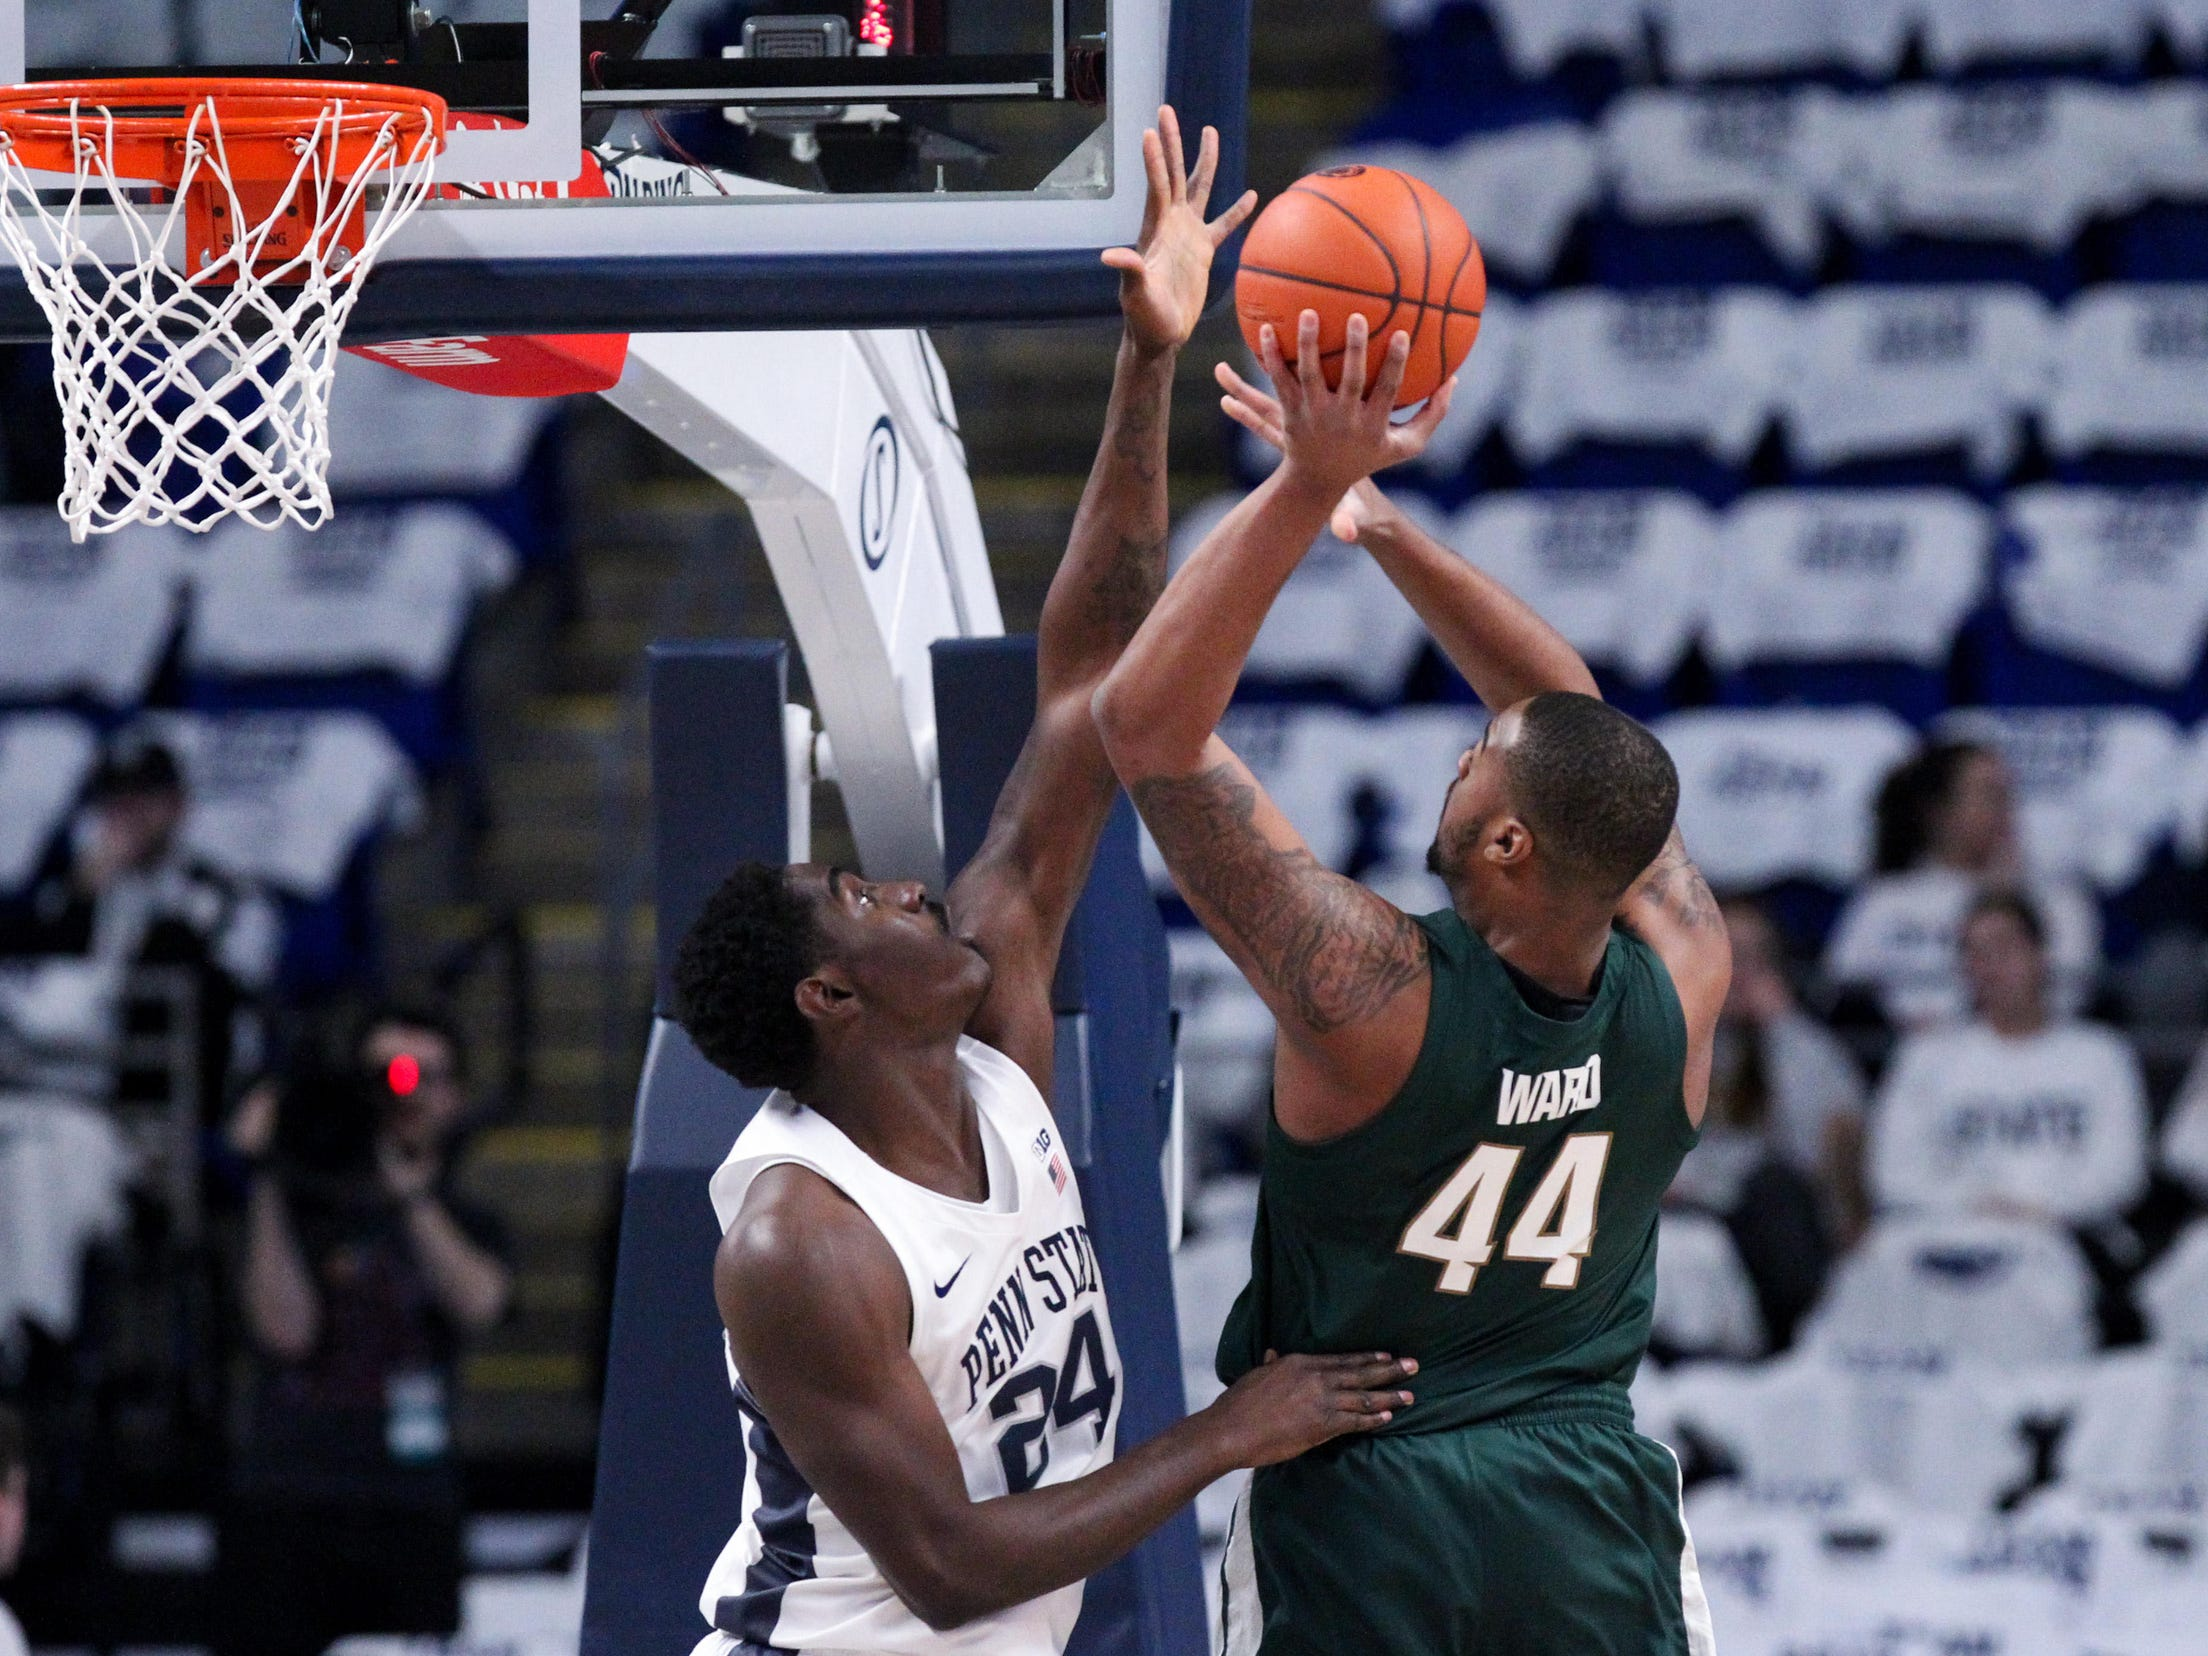 Penn State forward Mike Watkins defends as Michigan State forward Nick Ward shoots during the first half at Bryce Jordan Center, Jan. 13, 2019 in University Park, Pa.